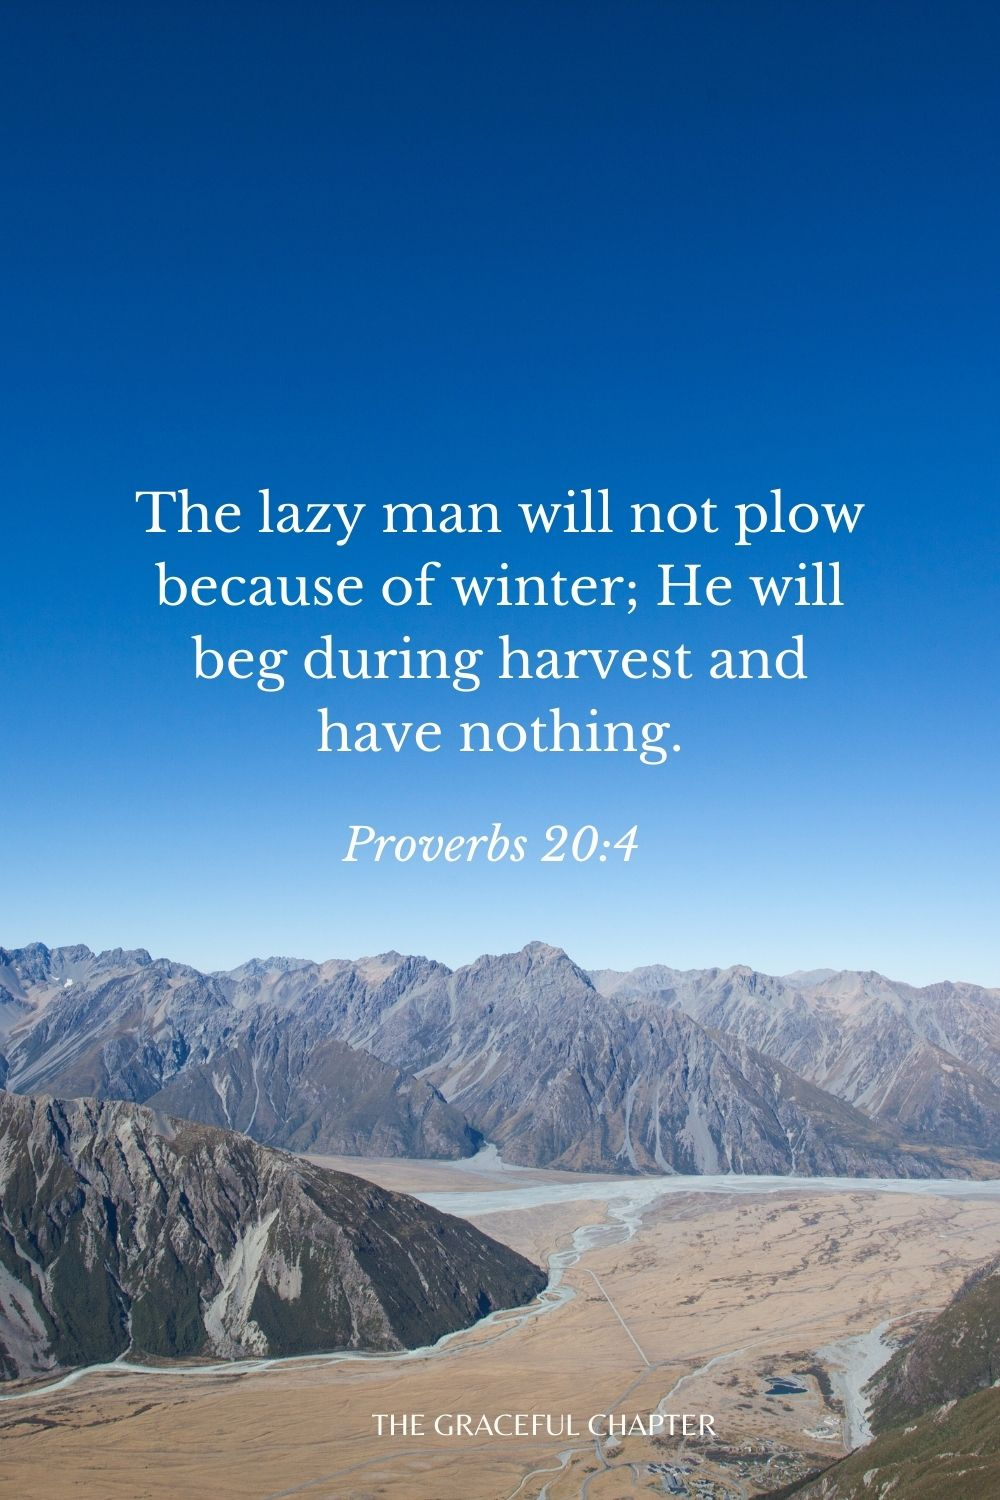 The lazy man will not plow because of winter; He will beg during harvest and have nothing. Proverbs 20:4